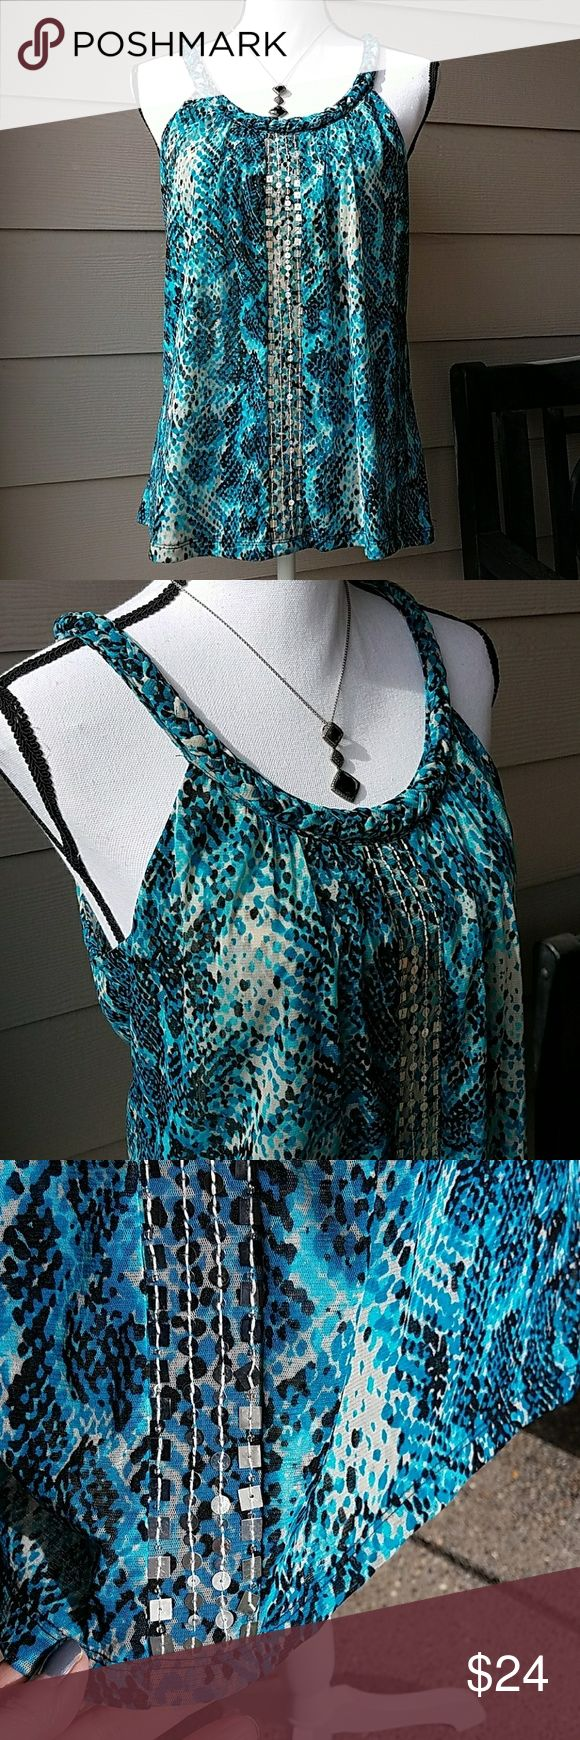 Macy's INC Nylon Top W/Silver Sequins SZ Med P 100% Nylon, Excellent Condition - No Sequins missing, Braided Detail Around Neck/Straps, Silver Sequins, Cut in Shoulders. Colors: Blues/Black/Off White. This is a Size Medium Petite INC International Concepts Tops Tank Tops